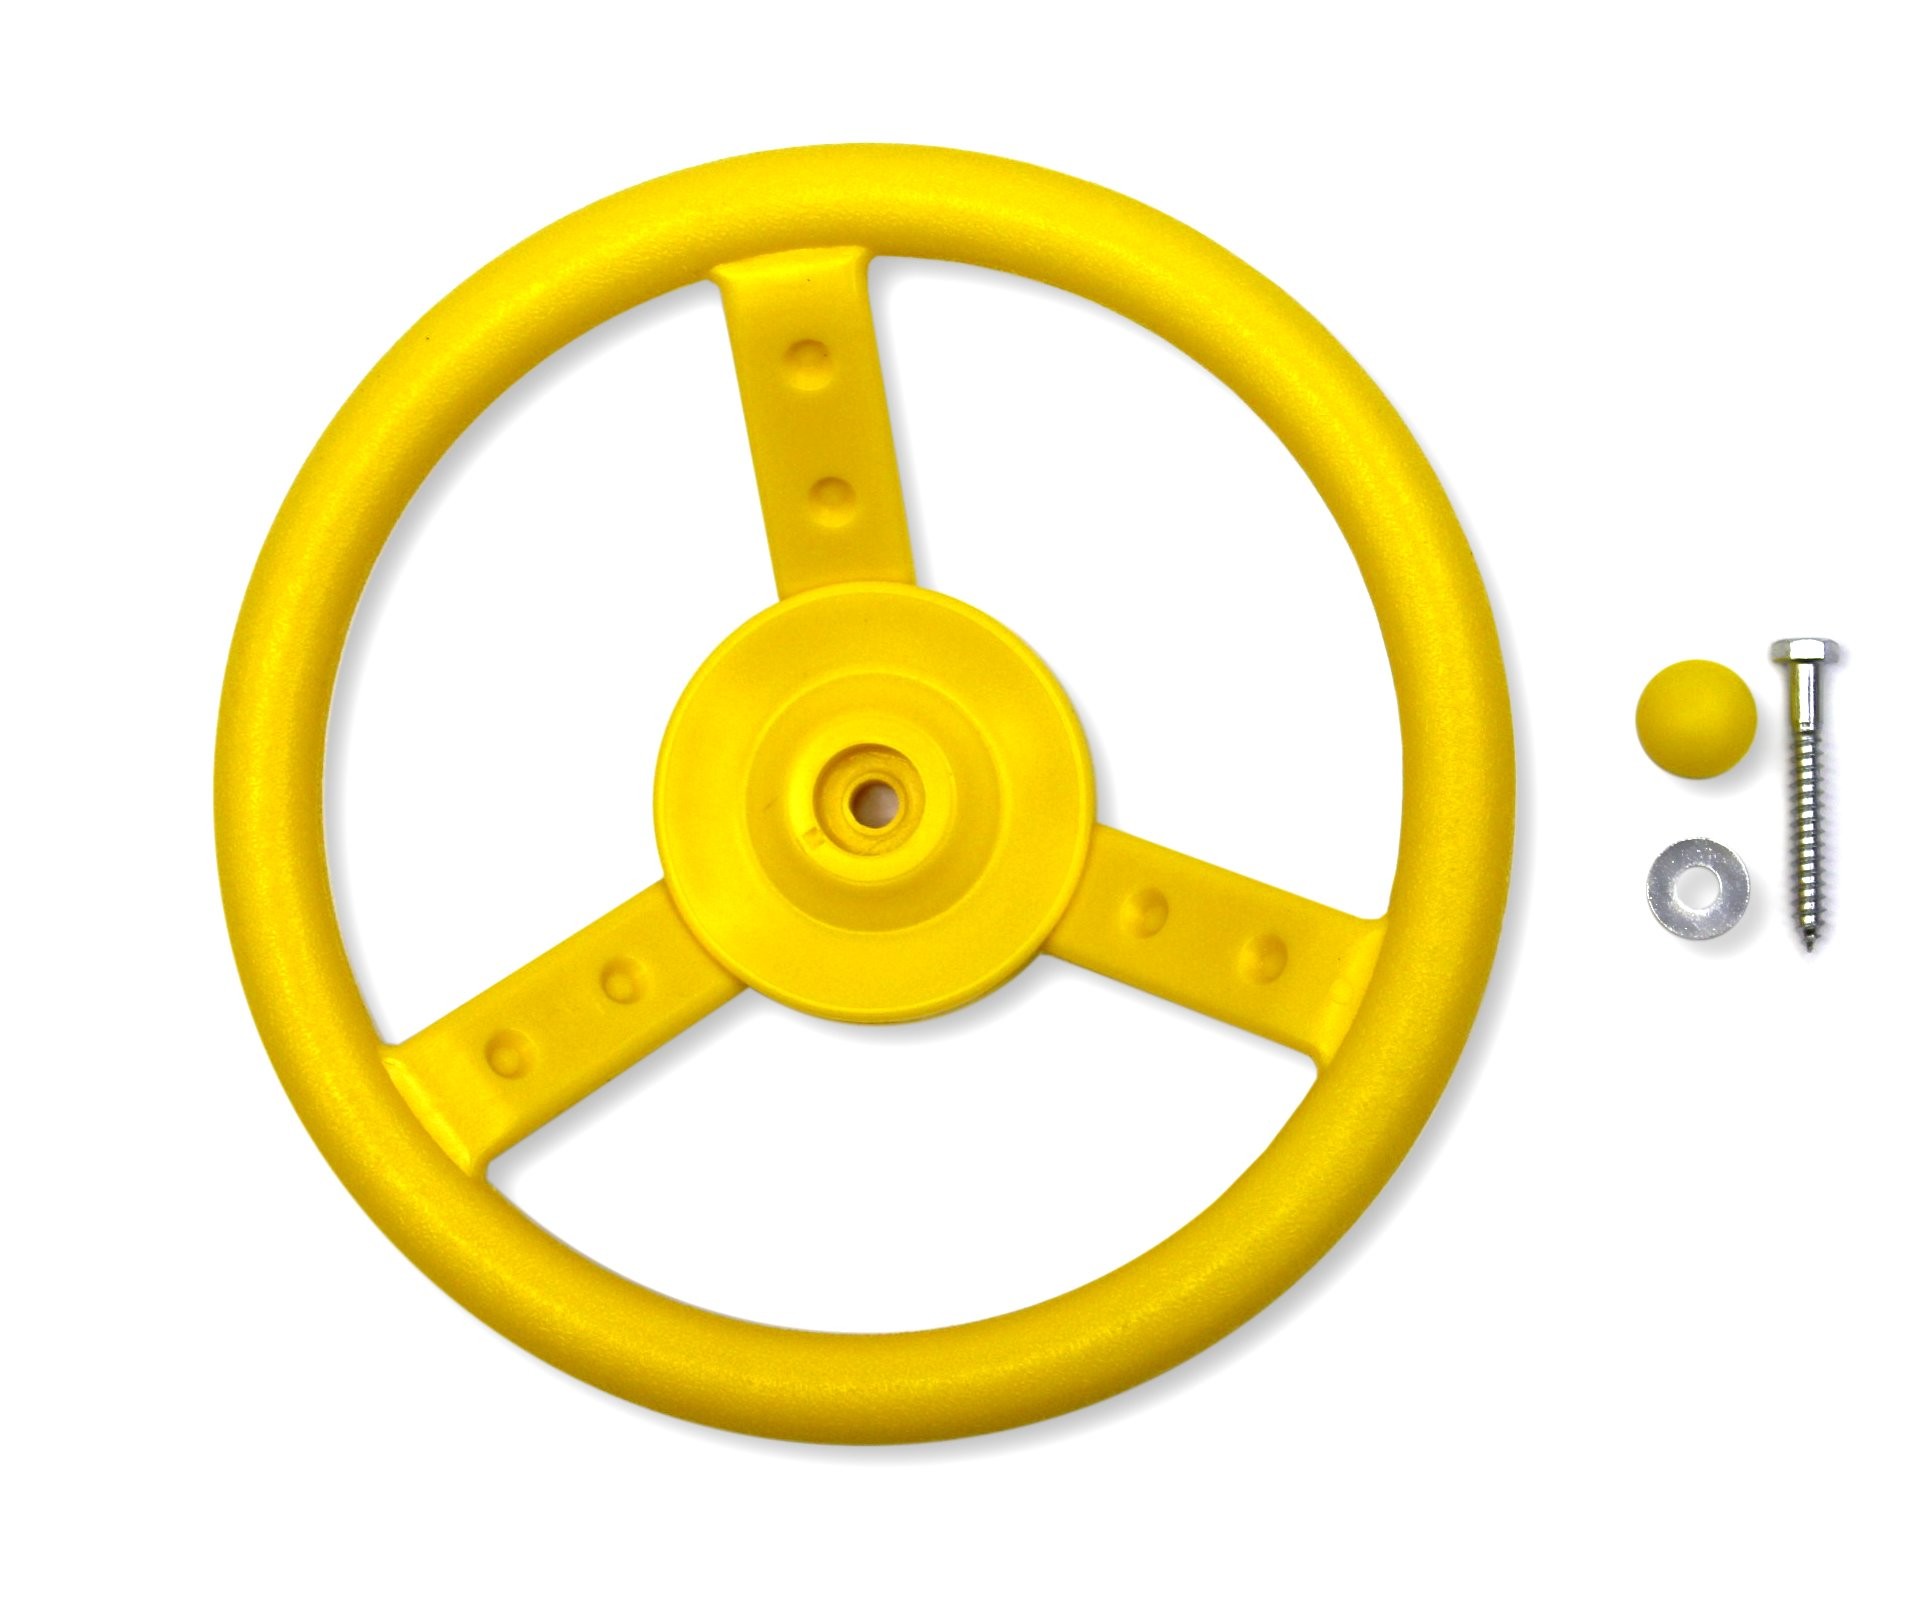 Eastern Jungle Gym Plastic Toy Steering Wheel Swing Set Accessory for Wood Backyard Play Set, Yellow by Eastern Jungle Gym